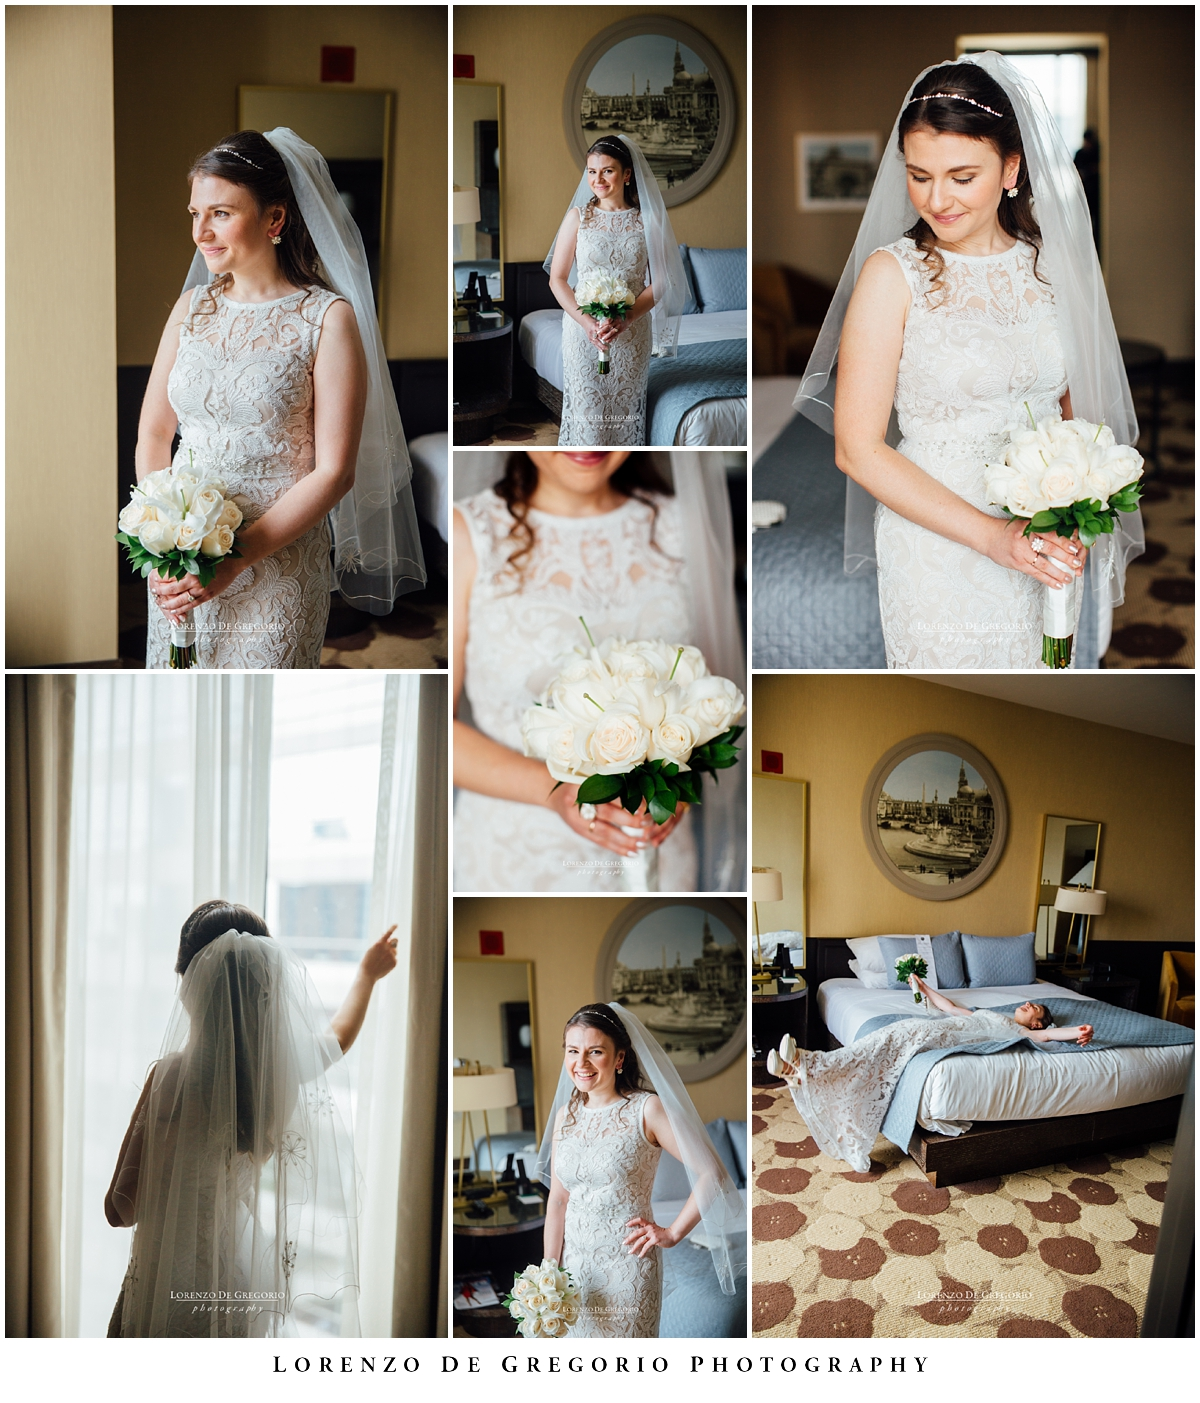 Bridal portraits at the Palomar hotel, Chicago. Hotel Palomar wedding, Chicago wedding photographer, Lorenzo De Gregorio Photography.